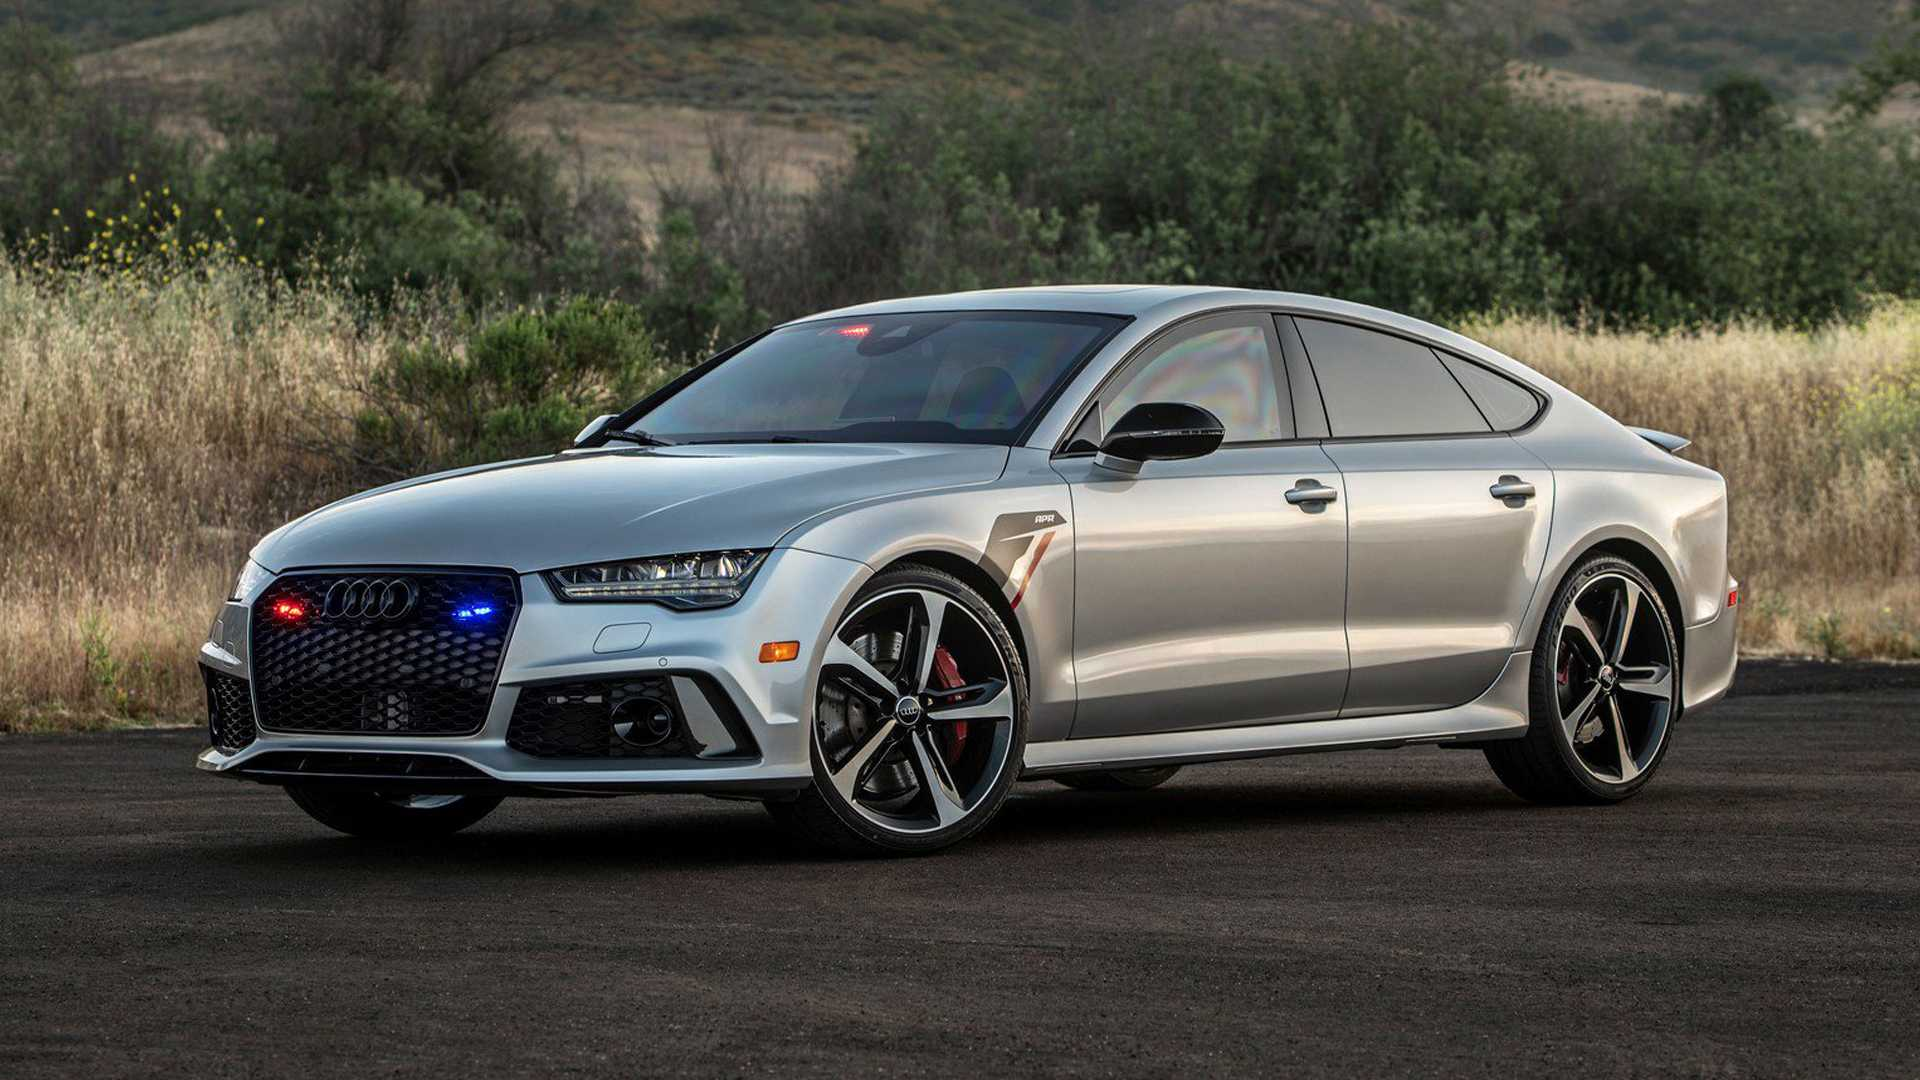 8f2509dfa World's fastest armoured car is this 202-mph Audi RS7 Sportback